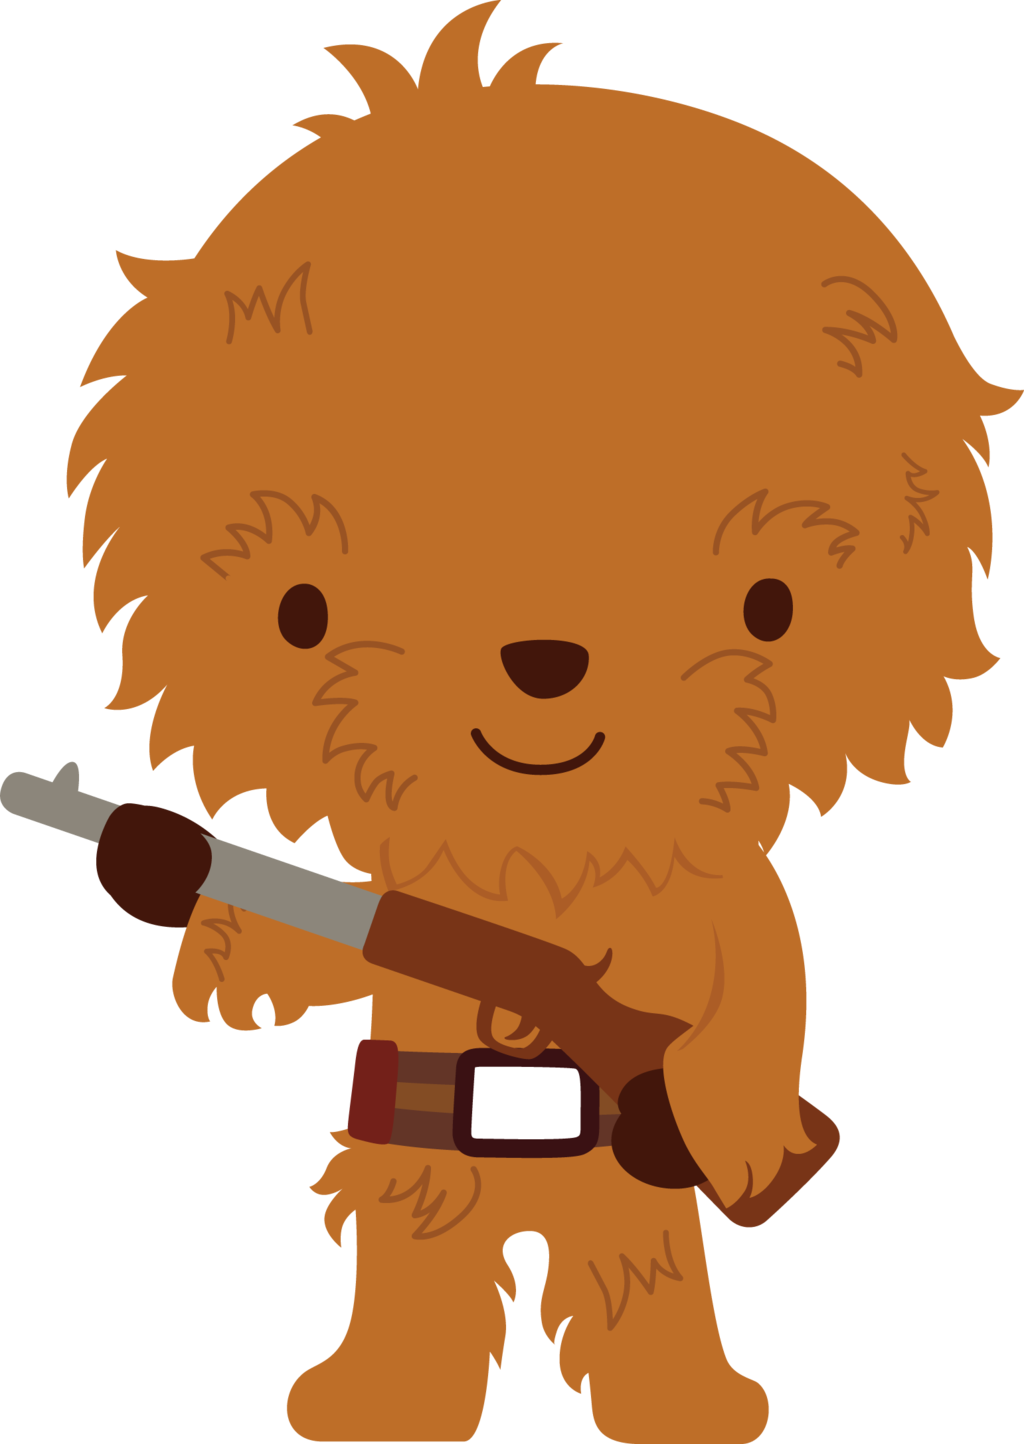 Chewbacca by chrispix deviantart. Disney star clipart